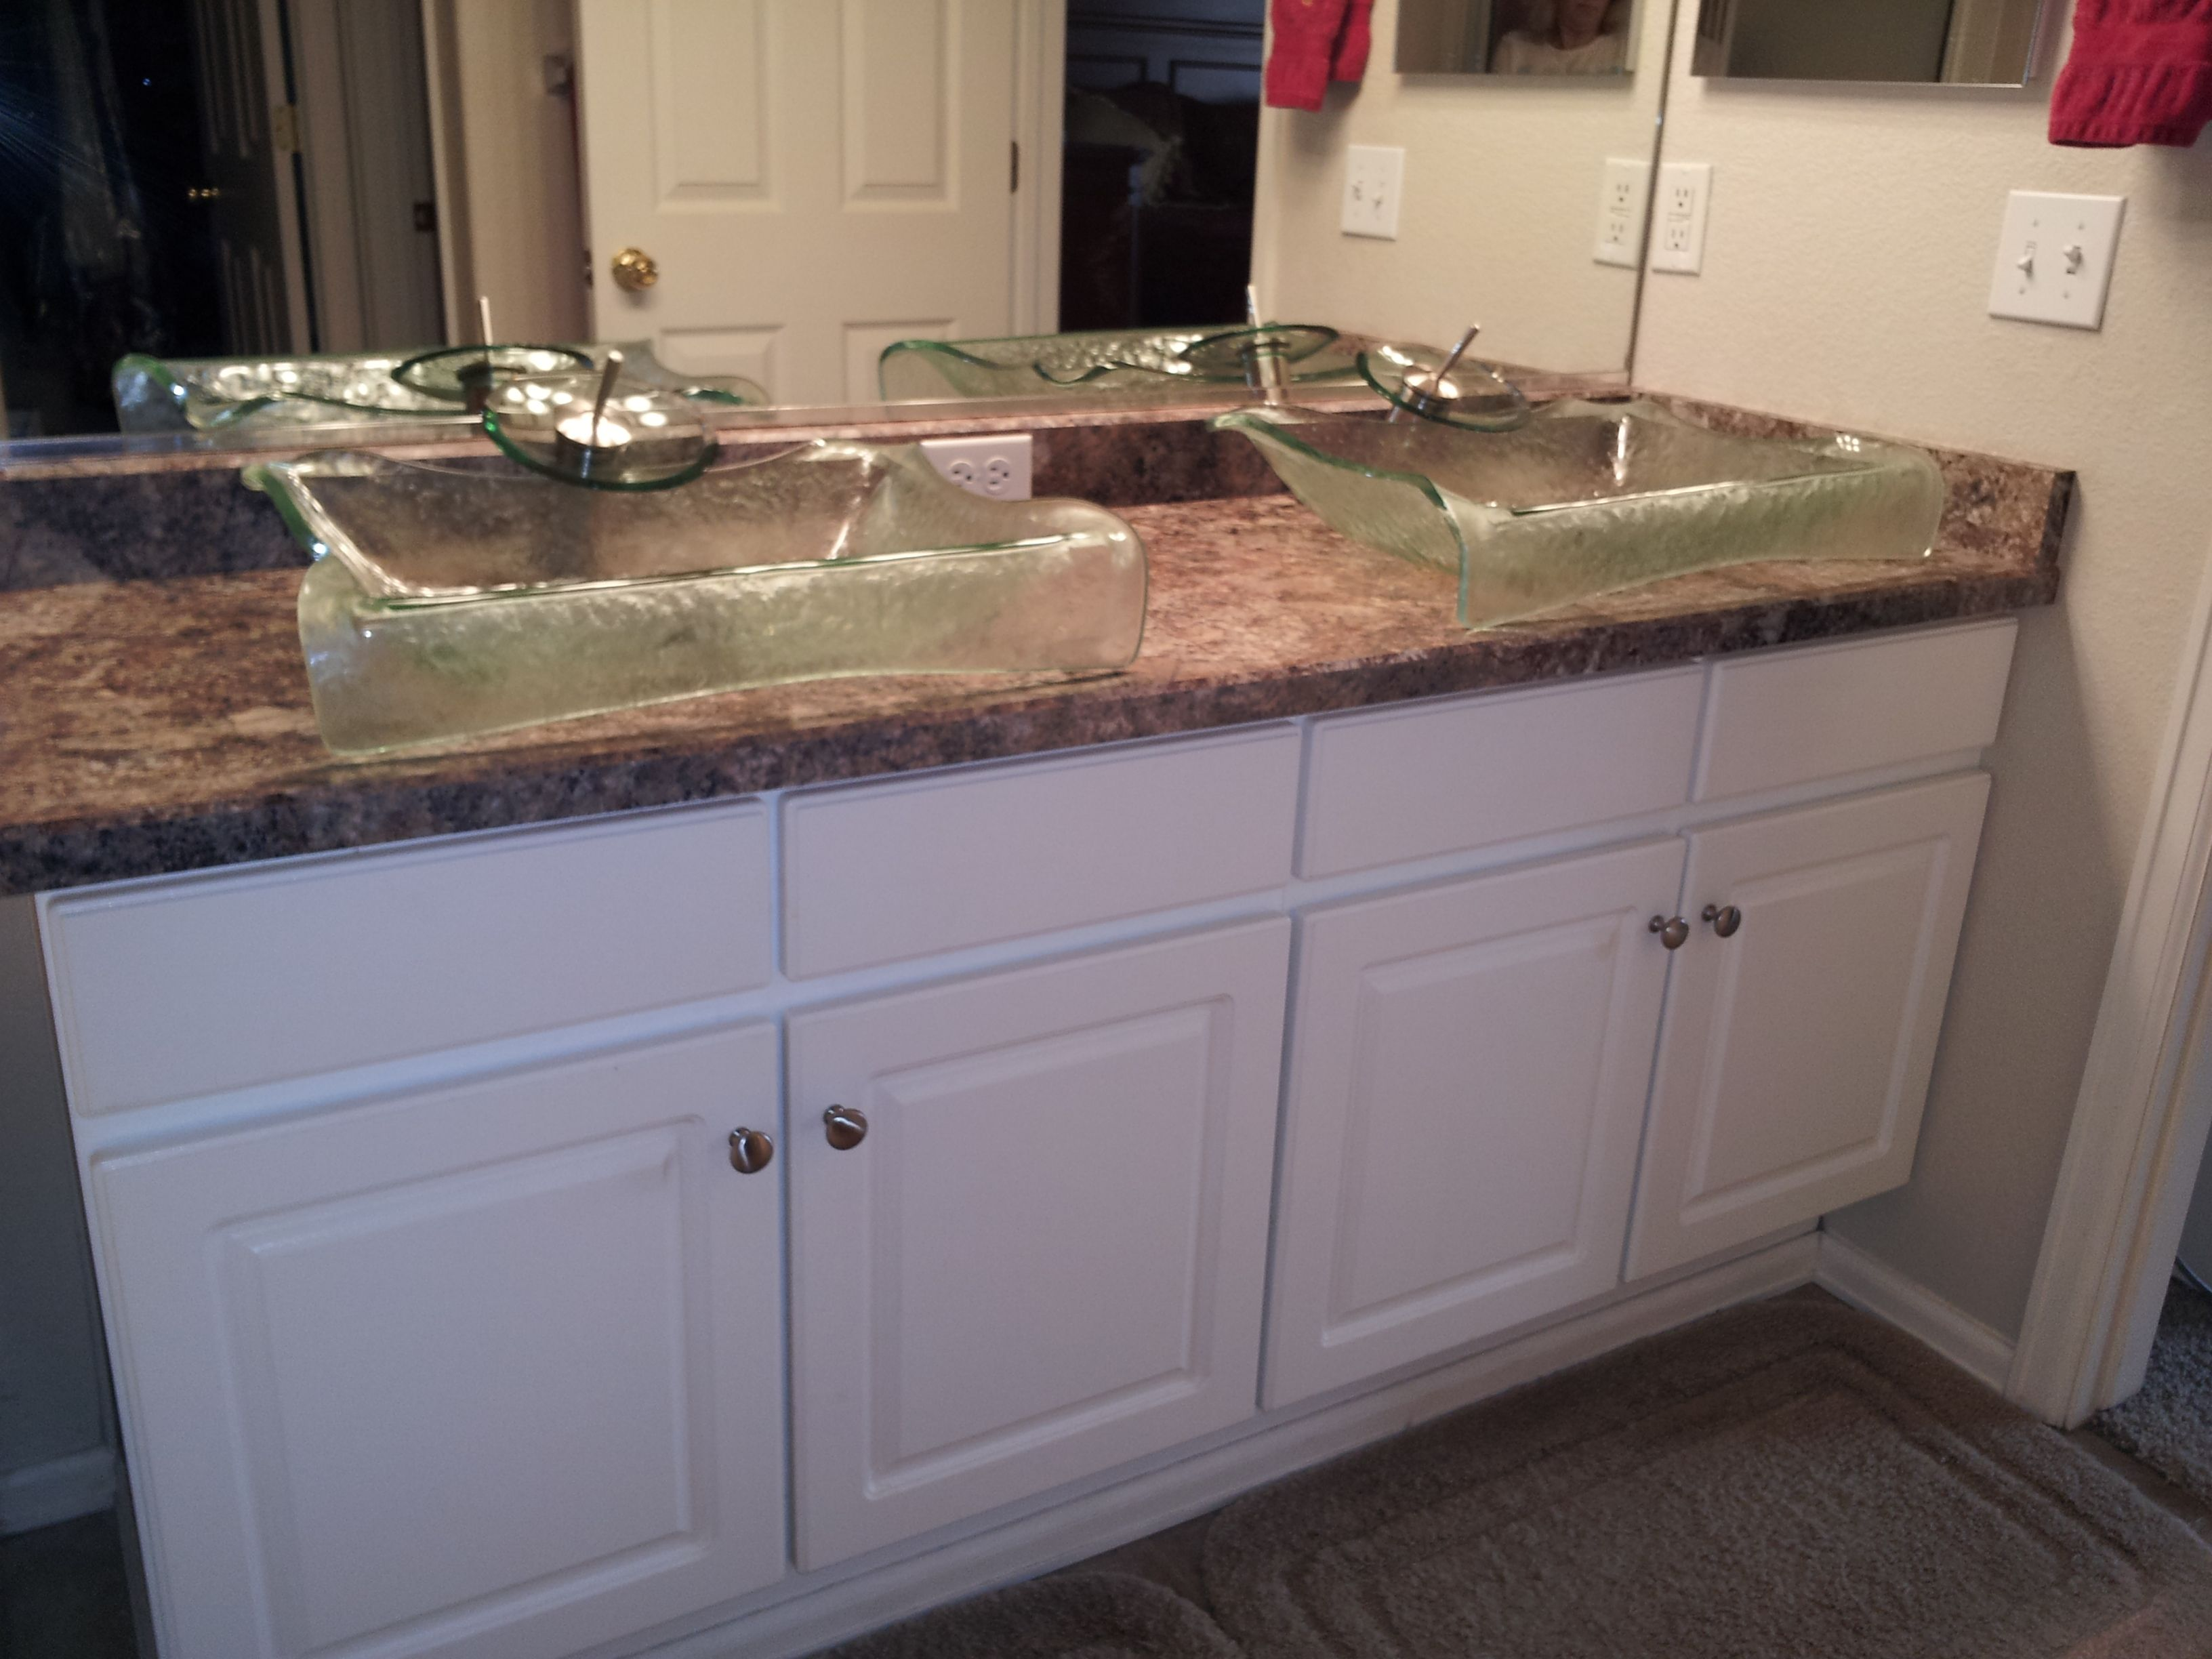 Change your basice bathroom vanity into a contemporary